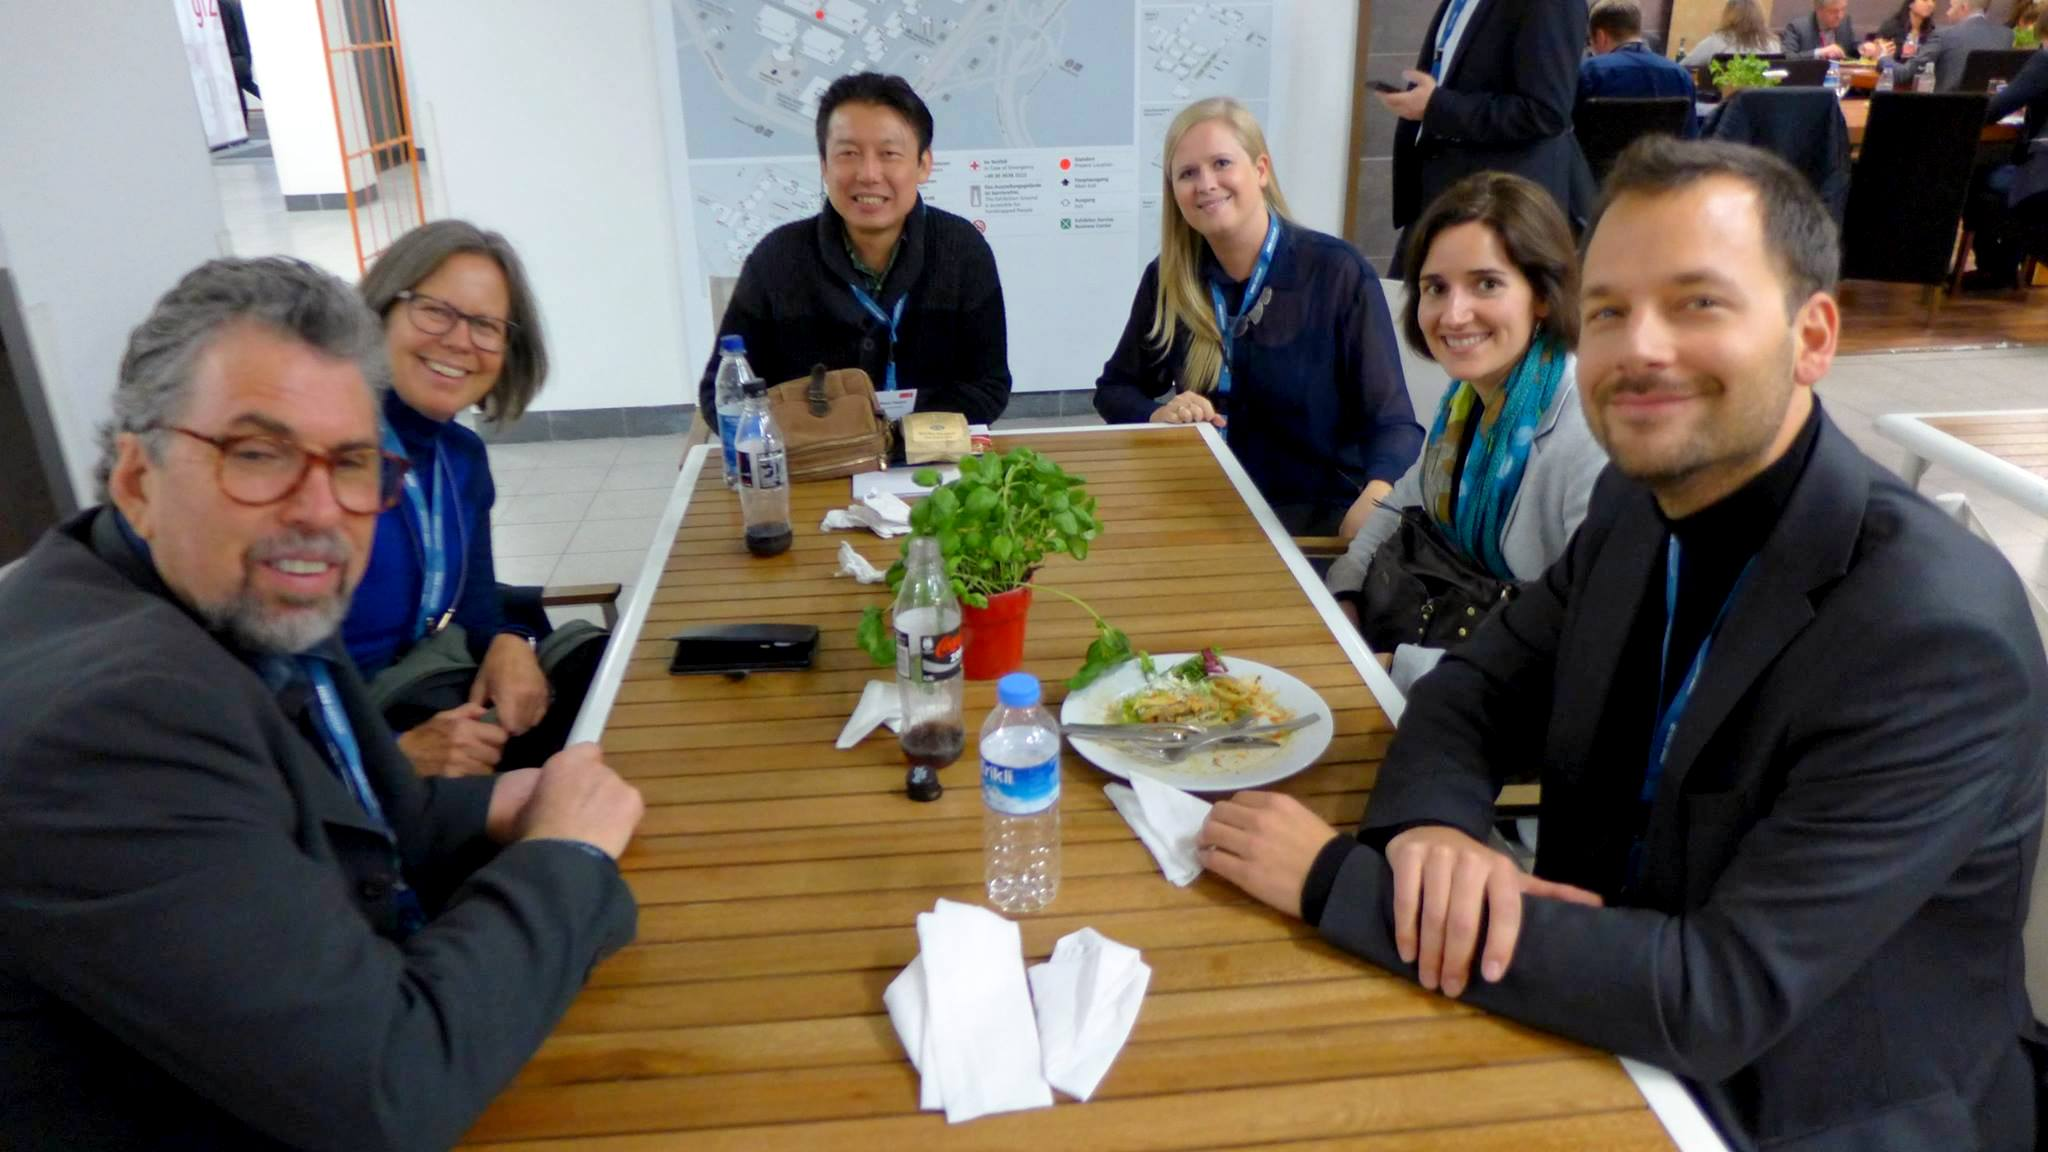 Sustainability Leaders Project team at ITB Berlin 2016